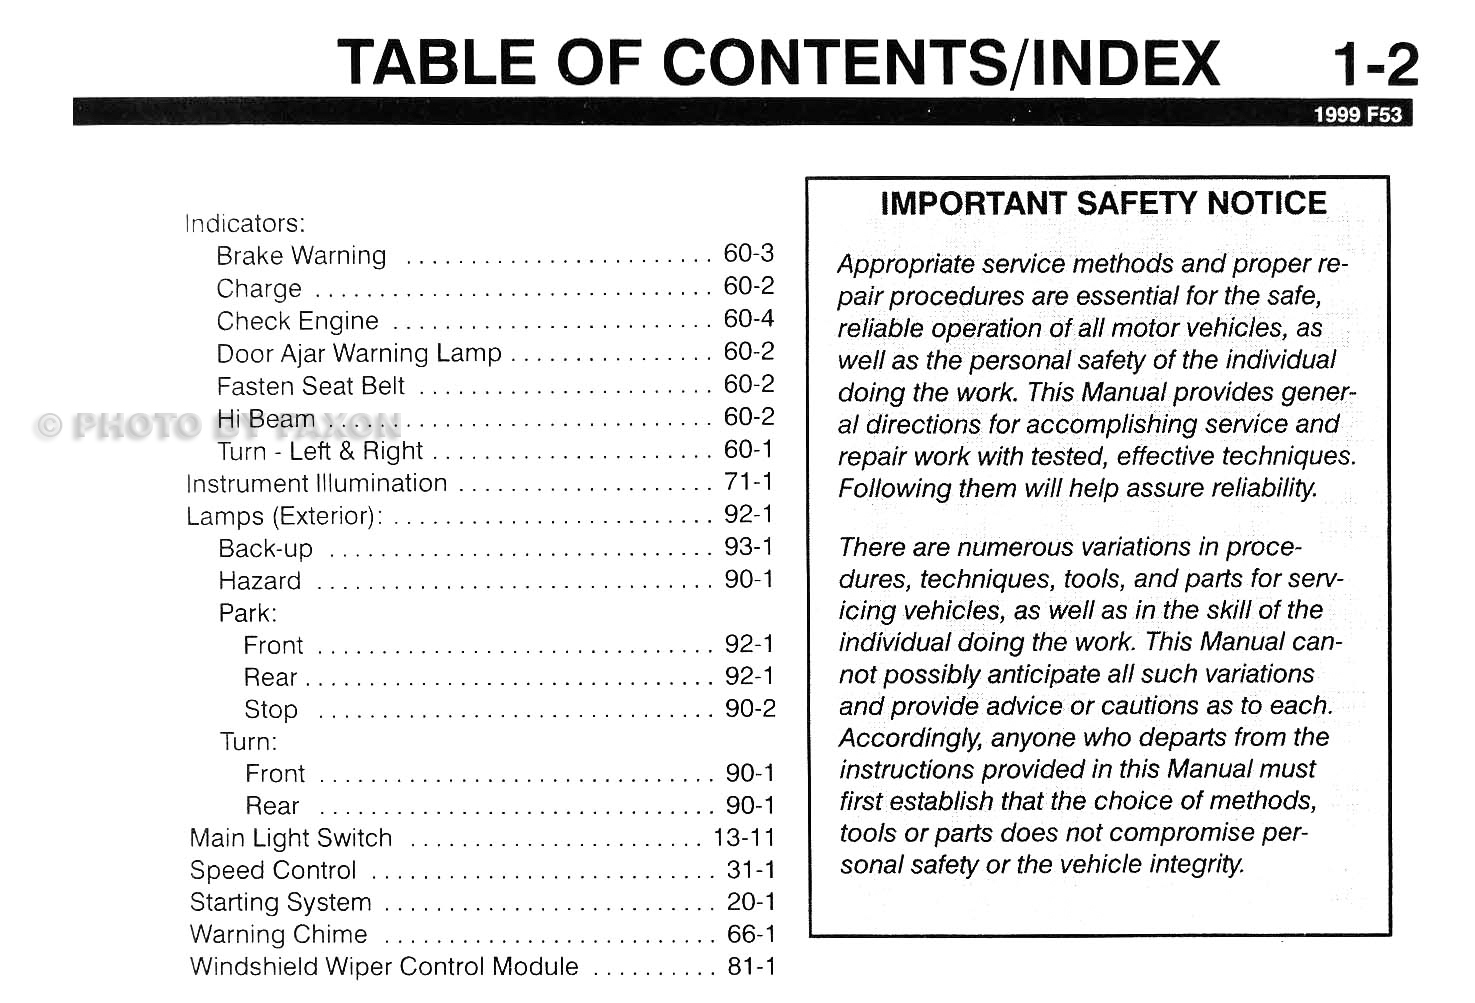 hight resolution of 1999 ford f 450 wiring diagram 30 wiring diagram images 2001 ford fuse panel diagram 2001 explorer sport fuse diagram